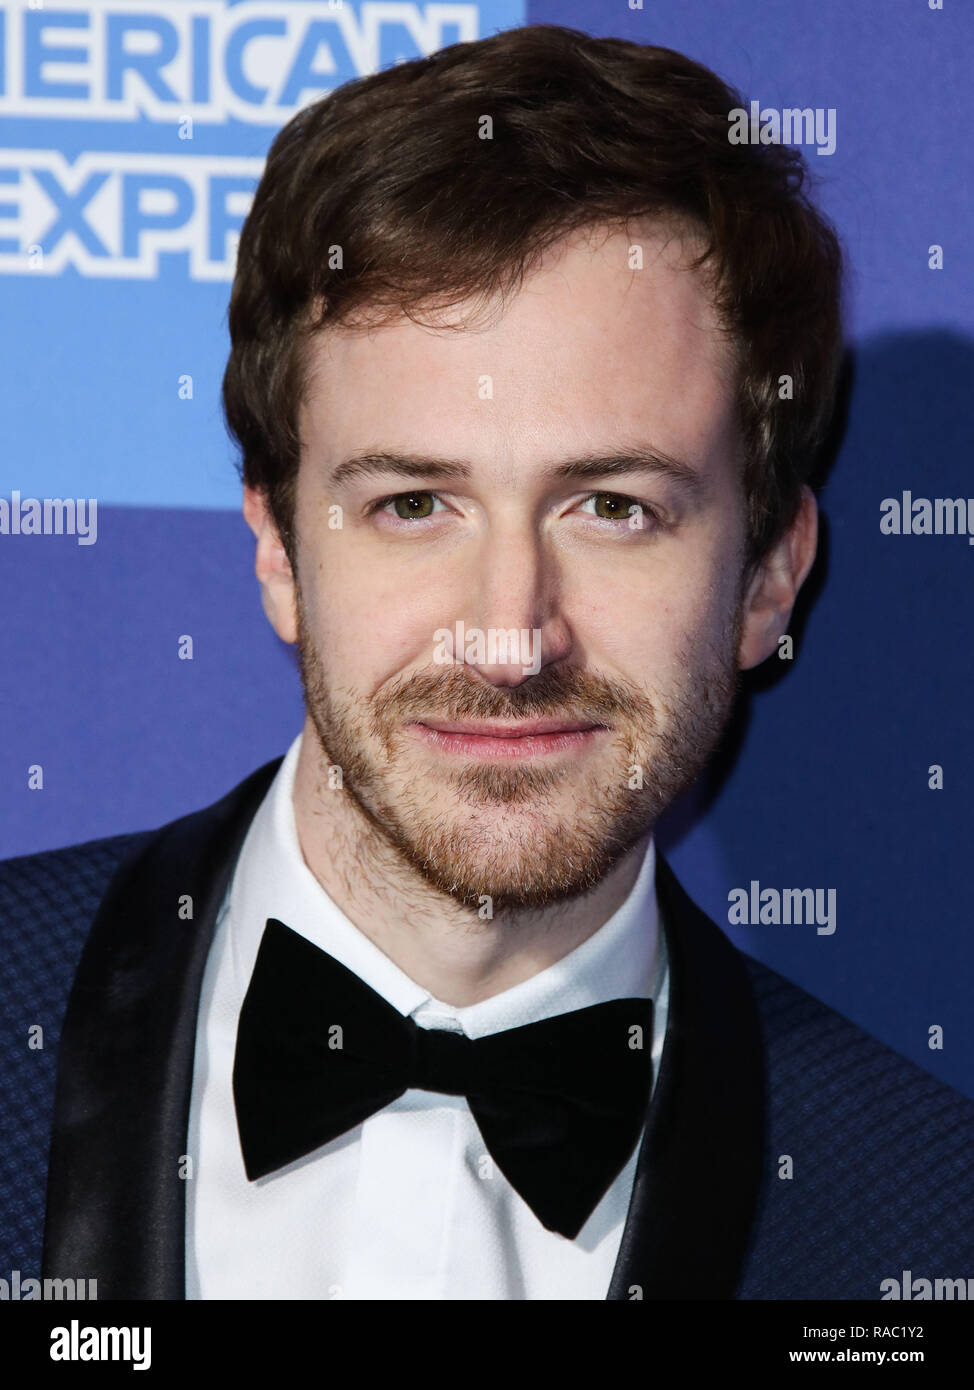 Palm Springs, California, USA. 3rd January, 2019. Joseph Mazzello arrives at the 30th Annual Palm Springs International Film Festival Awards Gala held at the Palm Springs Convention Center on January 3, 2019 in Palm Springs, California, United States. (Photo by Xavier Collin/Image Press Agency) Credit: Image Press Agency/Alamy Live News - Stock Image